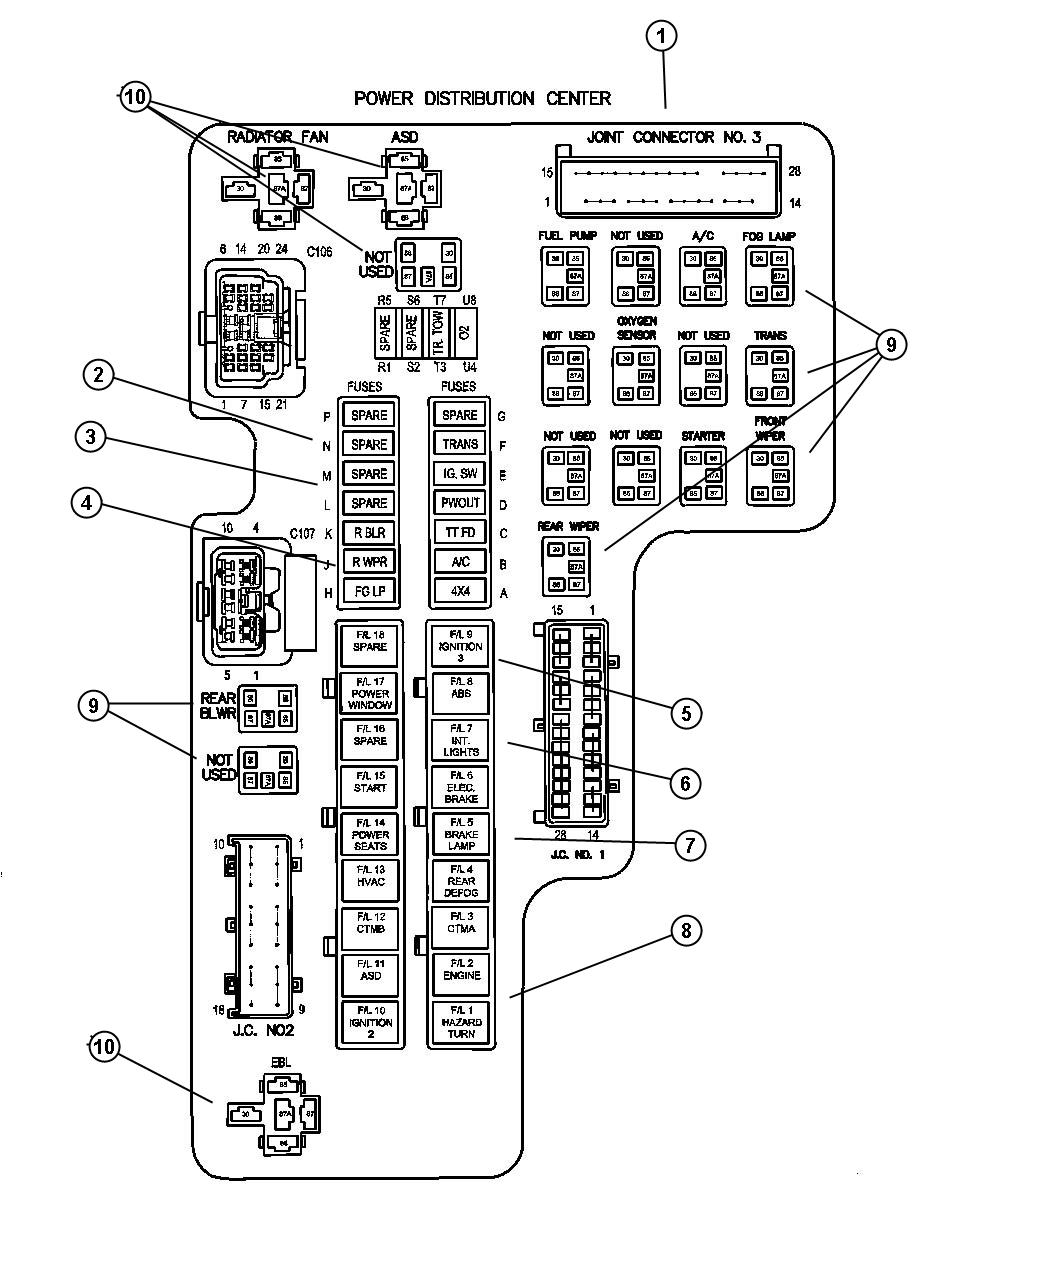 jeep cherokee dome light wiring diagram jeep discover your dodge ram starter relay location